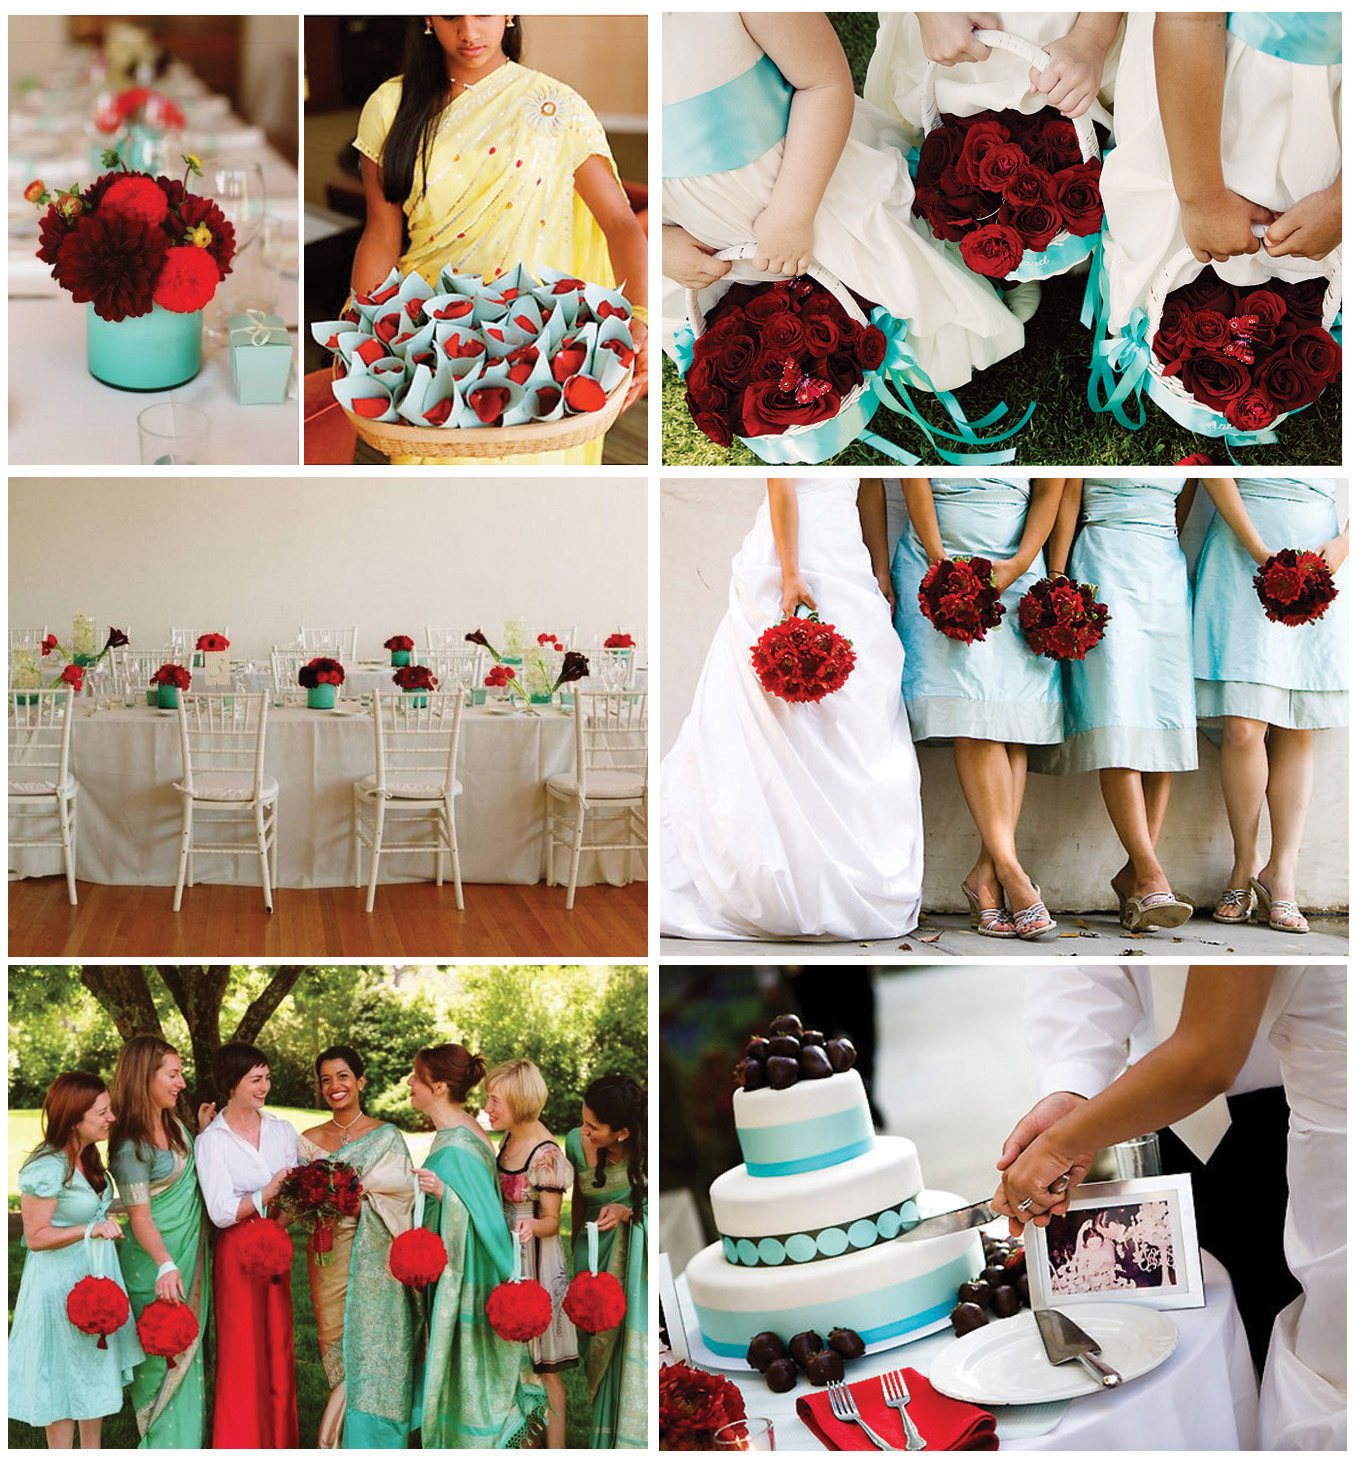 Turquoise And Red Wedding Ideas: Red, White & Aqua Wedding Colors